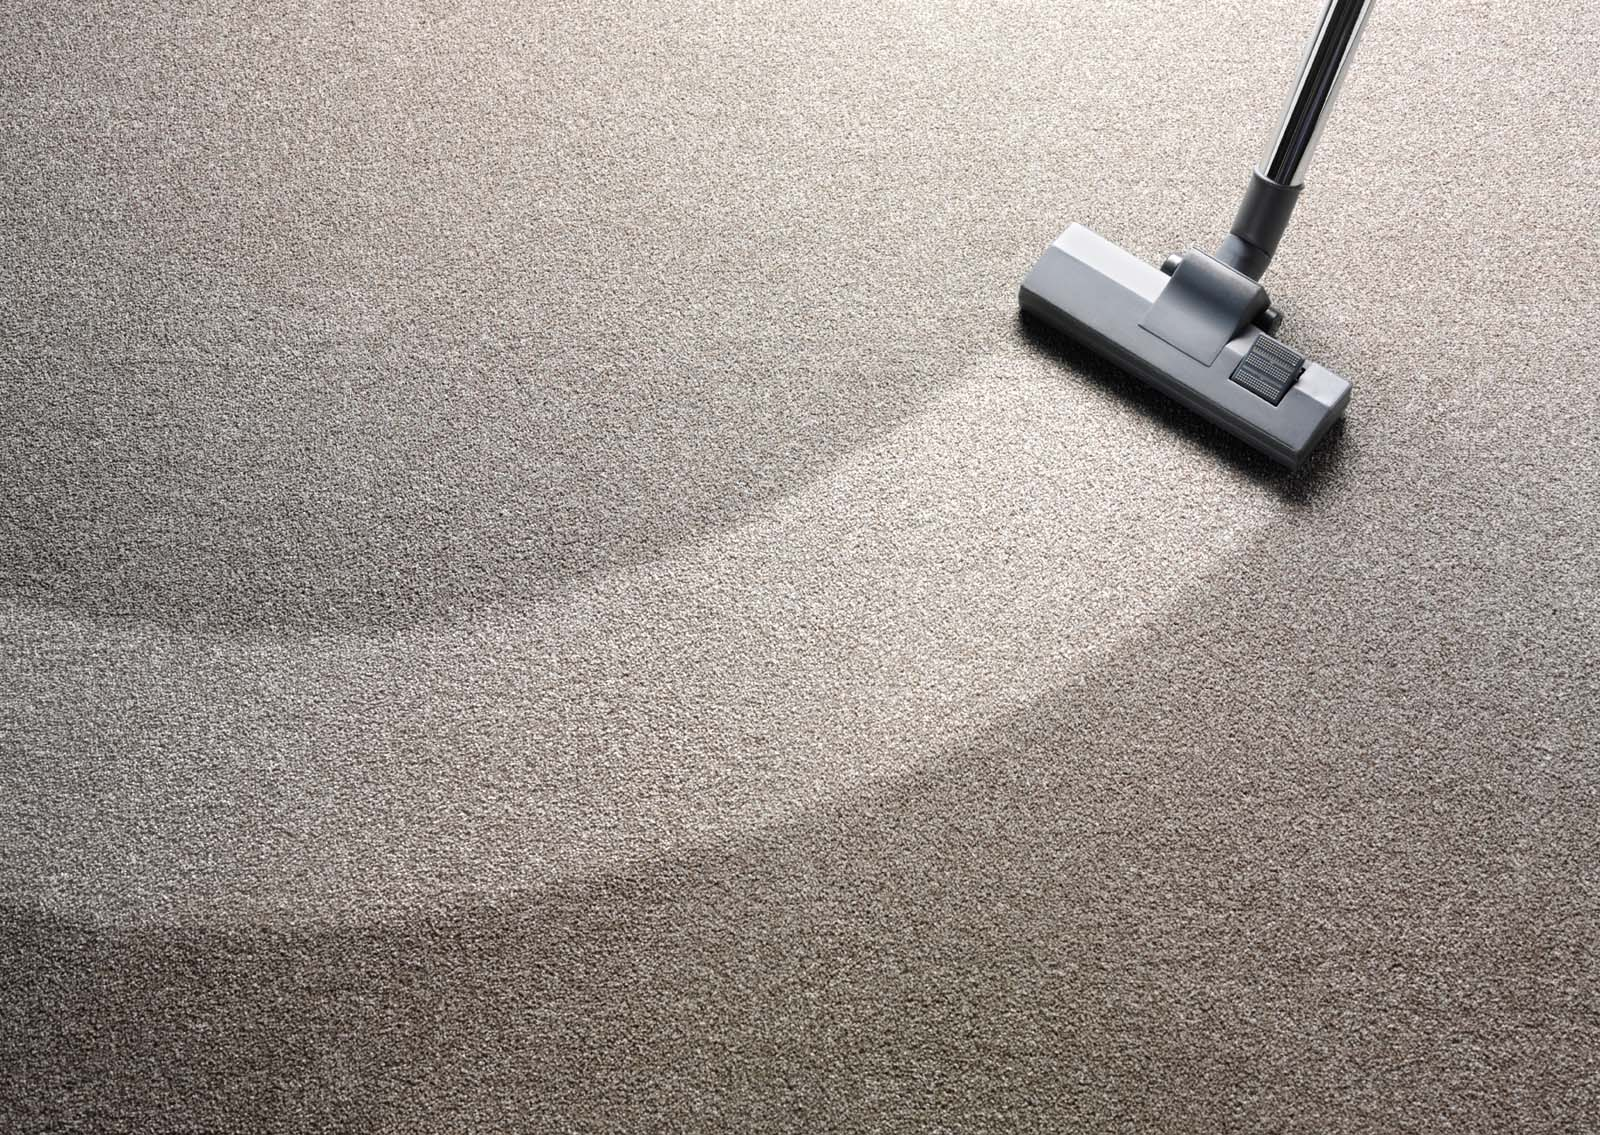 Carpet cleaner in Warrane